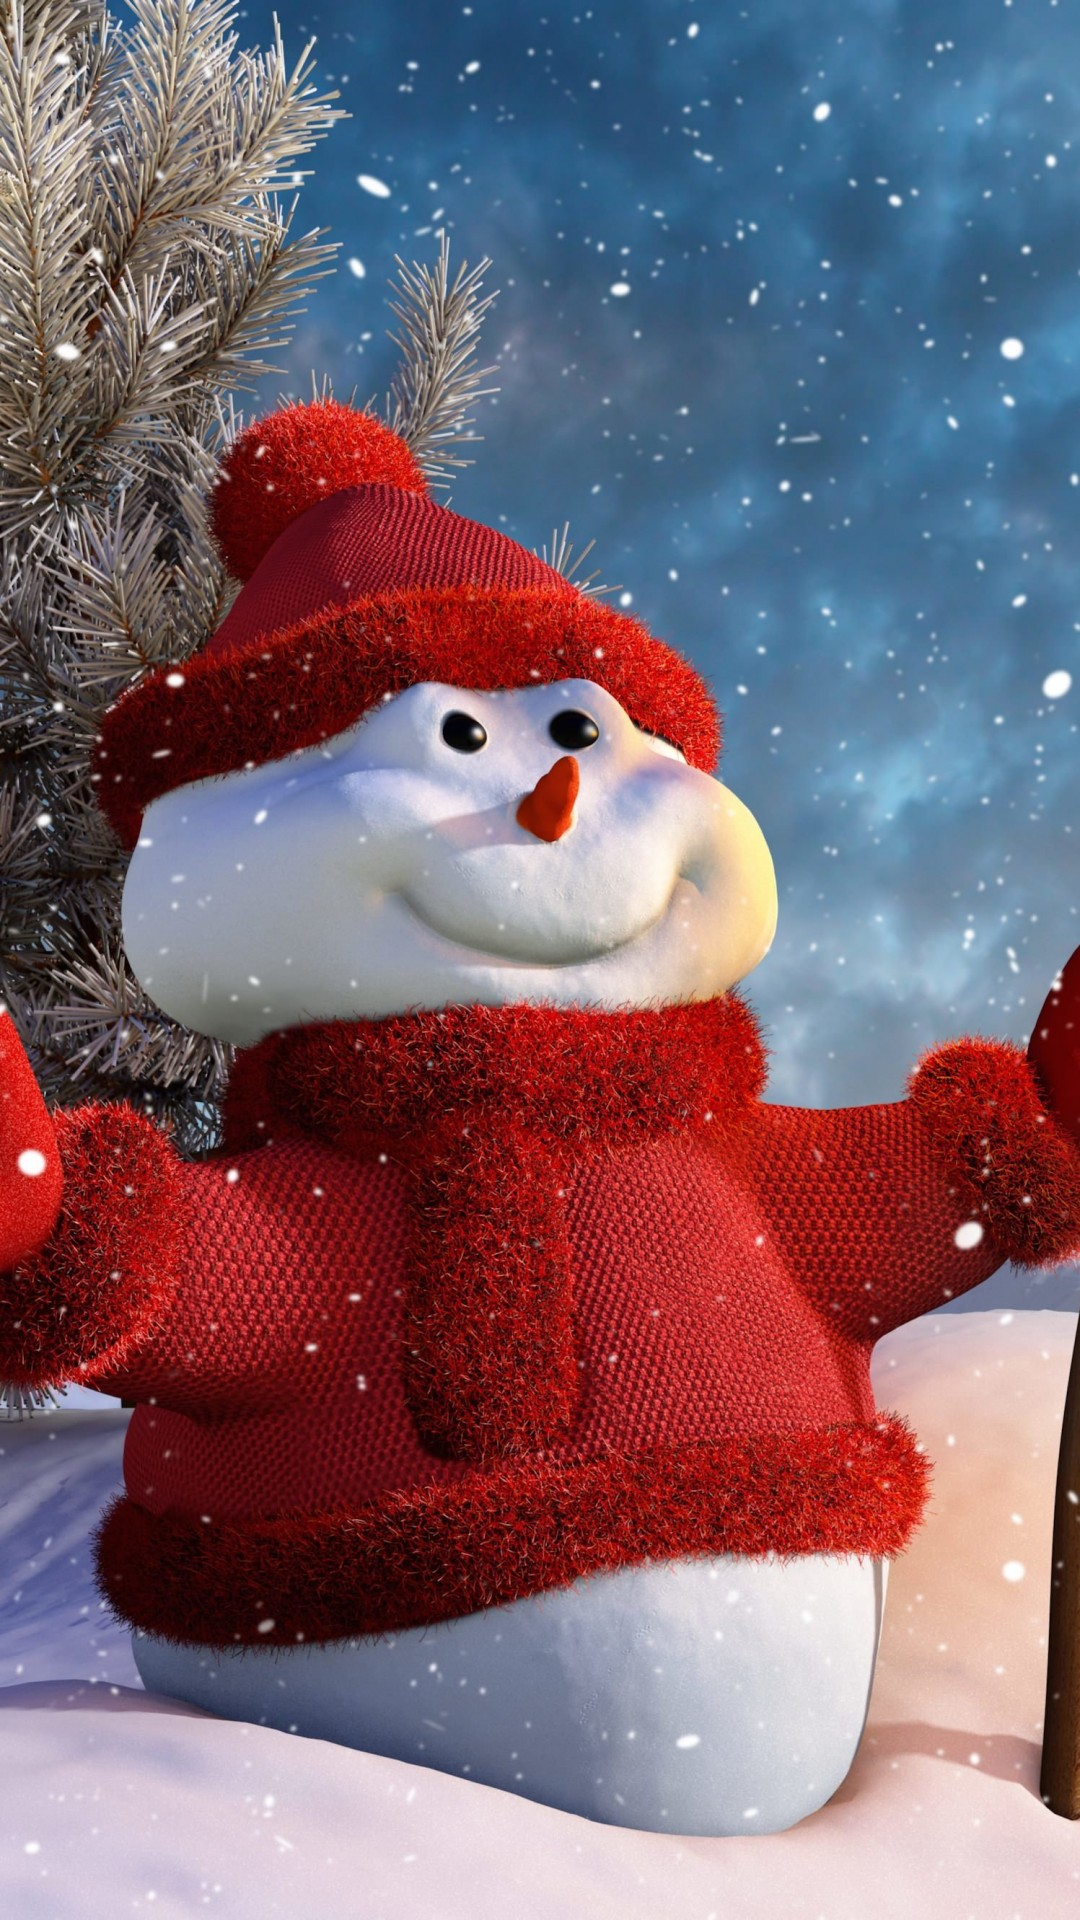 Christmas Snowman Wallpaper for Google Nexus 5